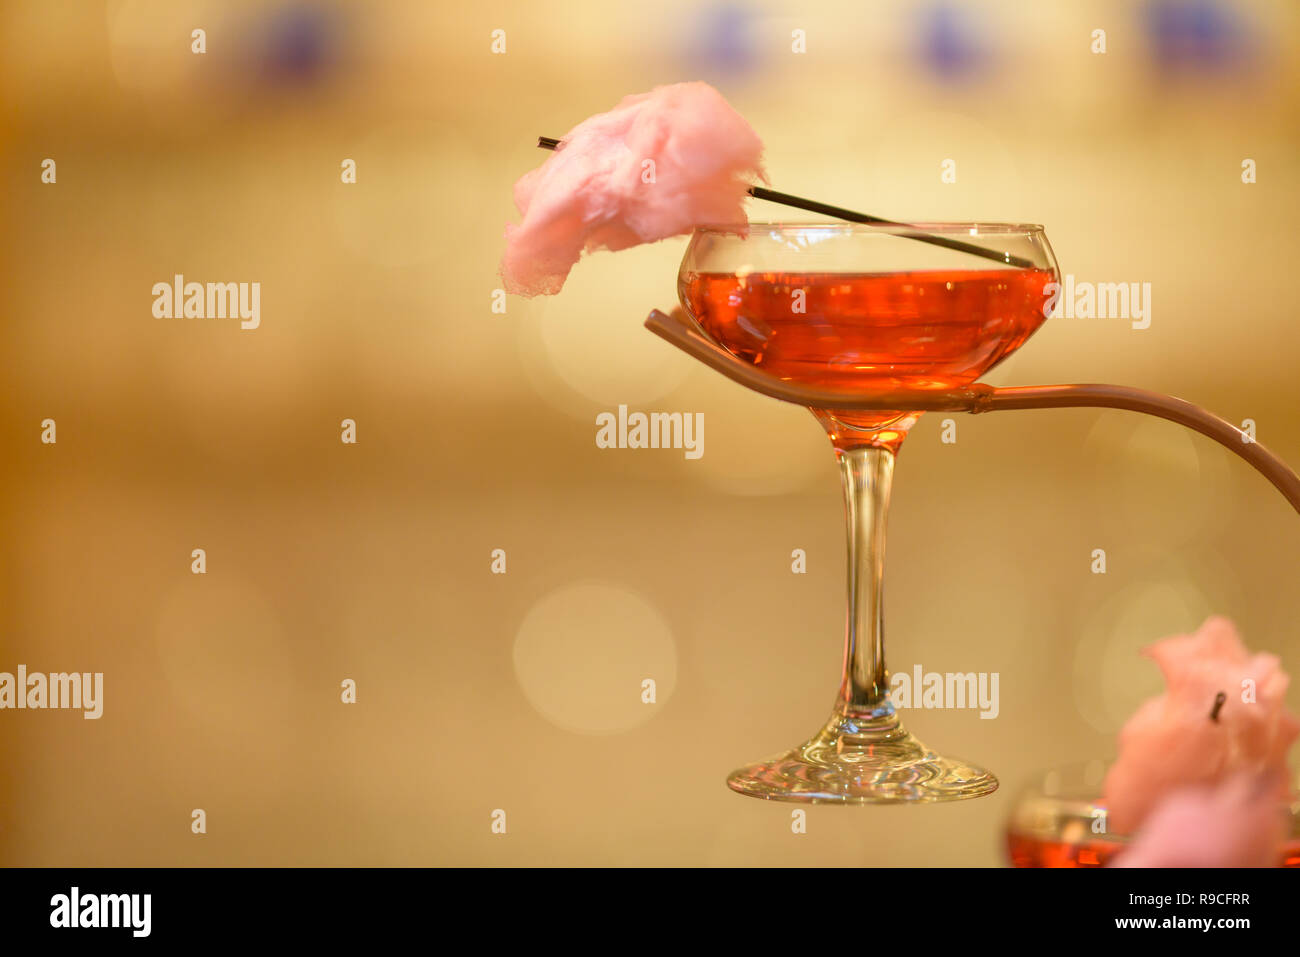 Candy floss cocktail on cocktail tree with straw holding piece of candy floss. Pink cotton candy. Landscape format image in high resolution, - Stock Image